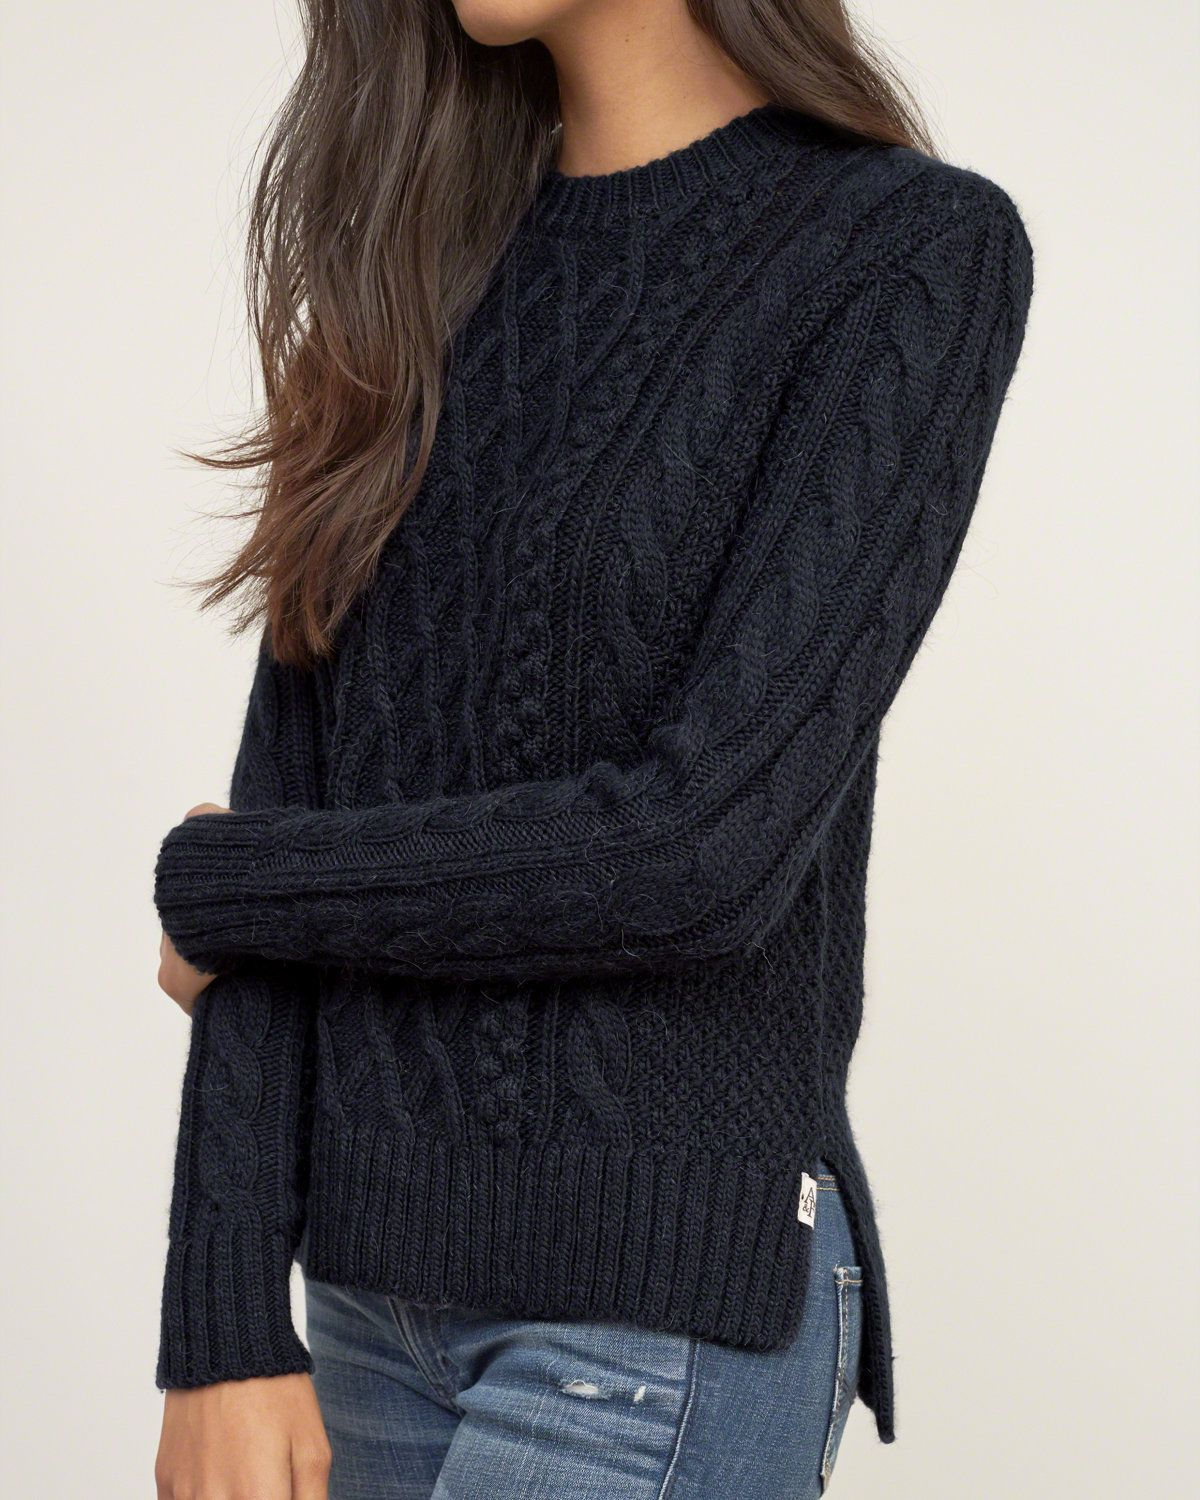 3580a59b18f Womens Cable Knit Pullover | The cozy essential that you'll wear ...